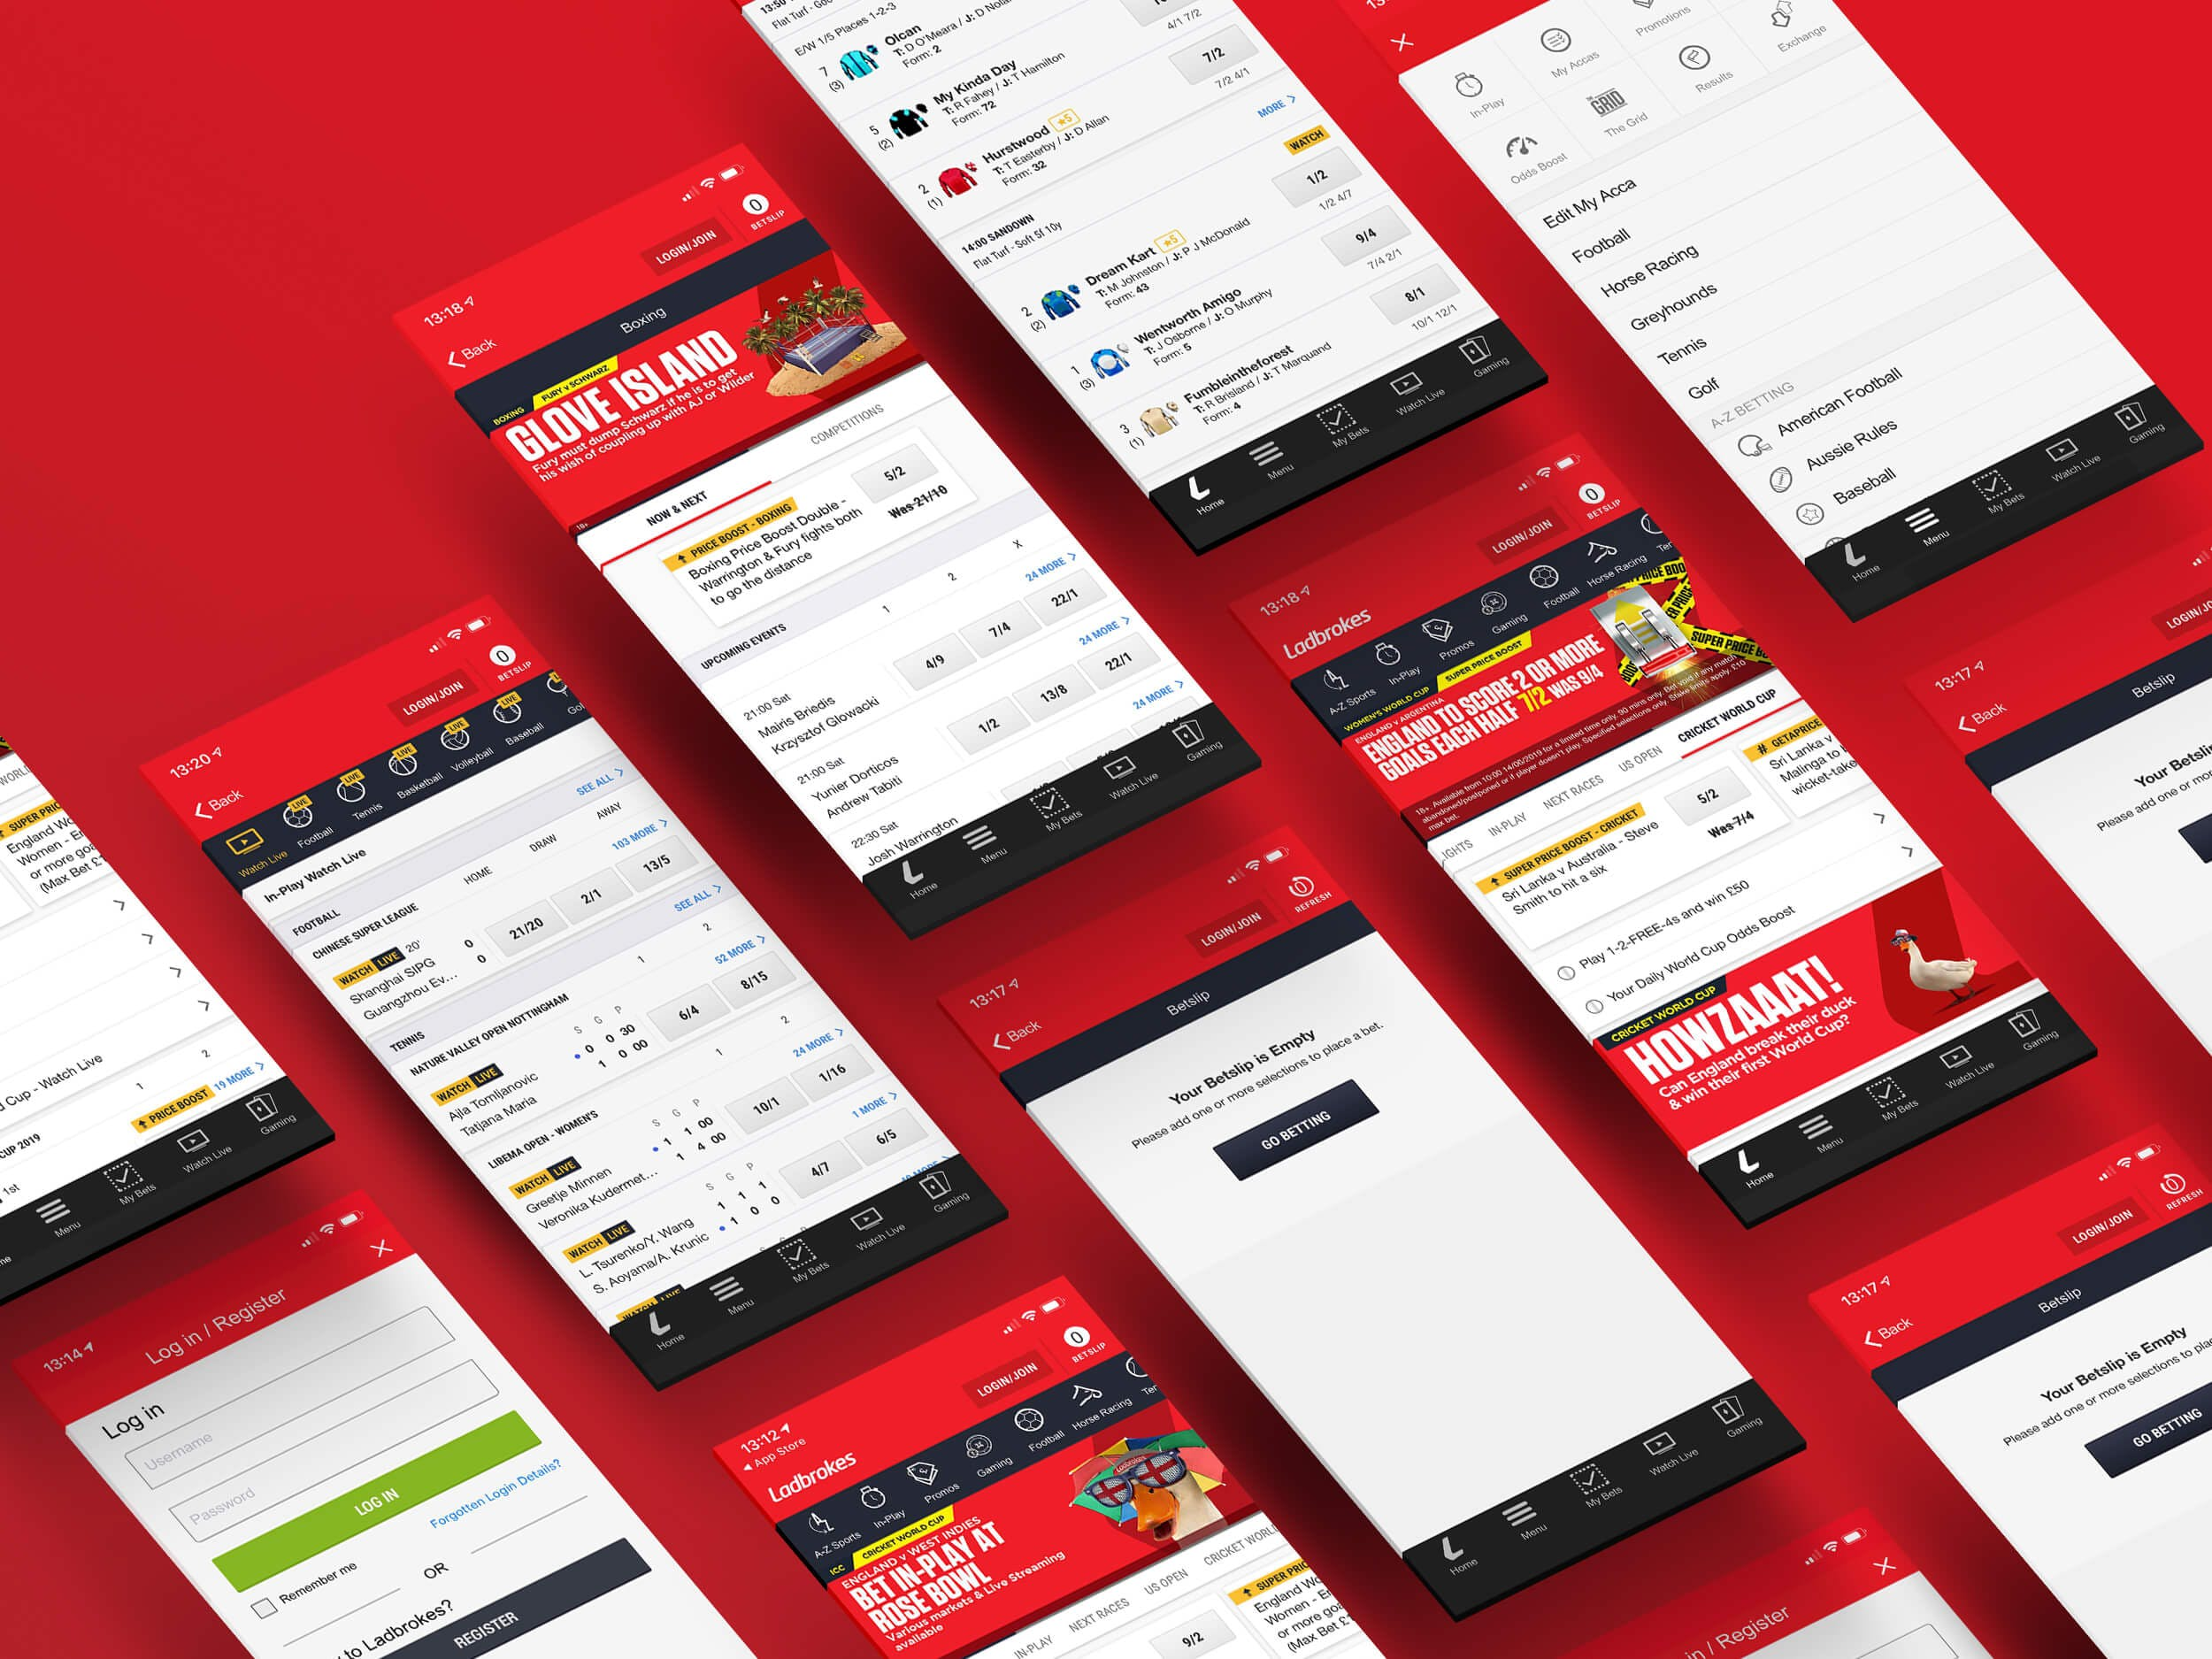 ladbrokes app wireframes and layouts